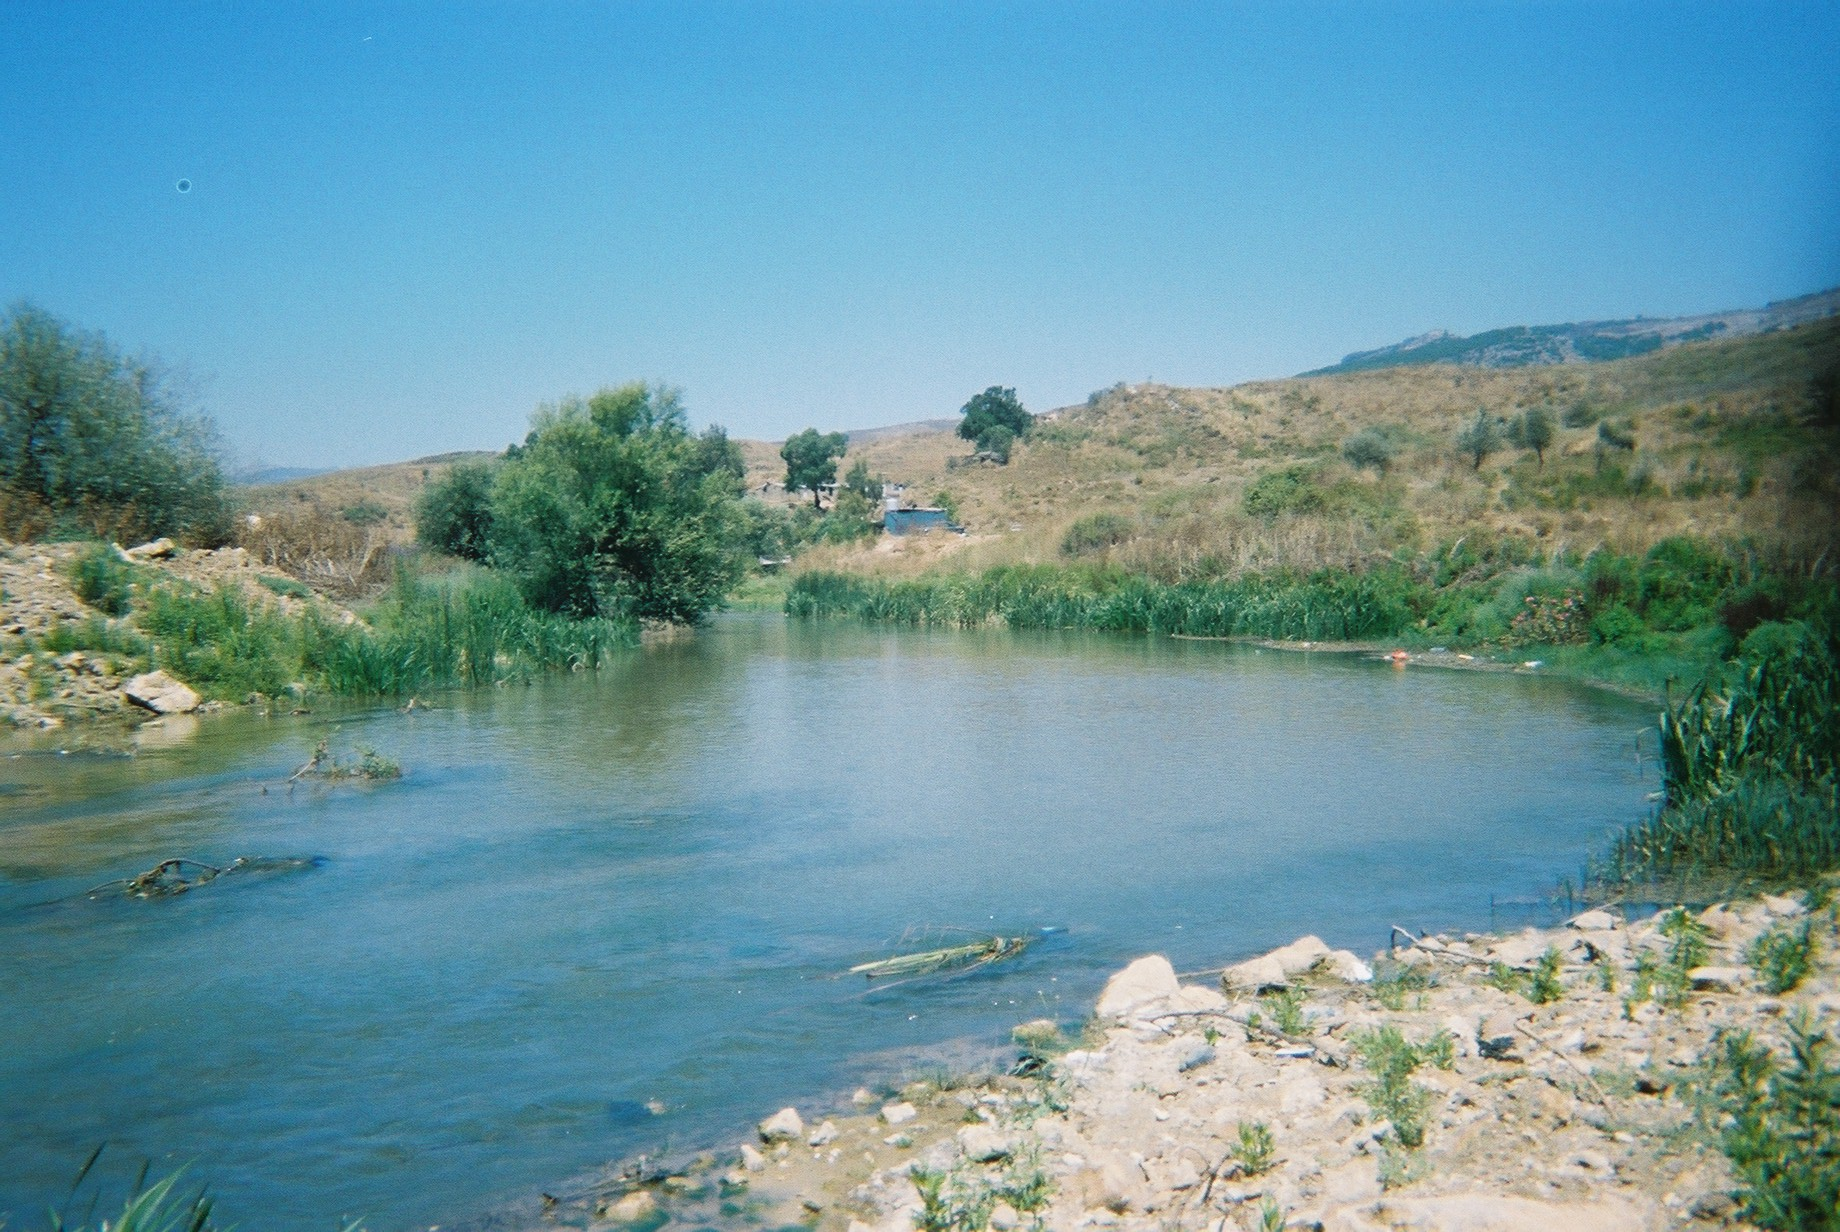 File:South litani river.JPG  Wikipedia, the free encyclopedia